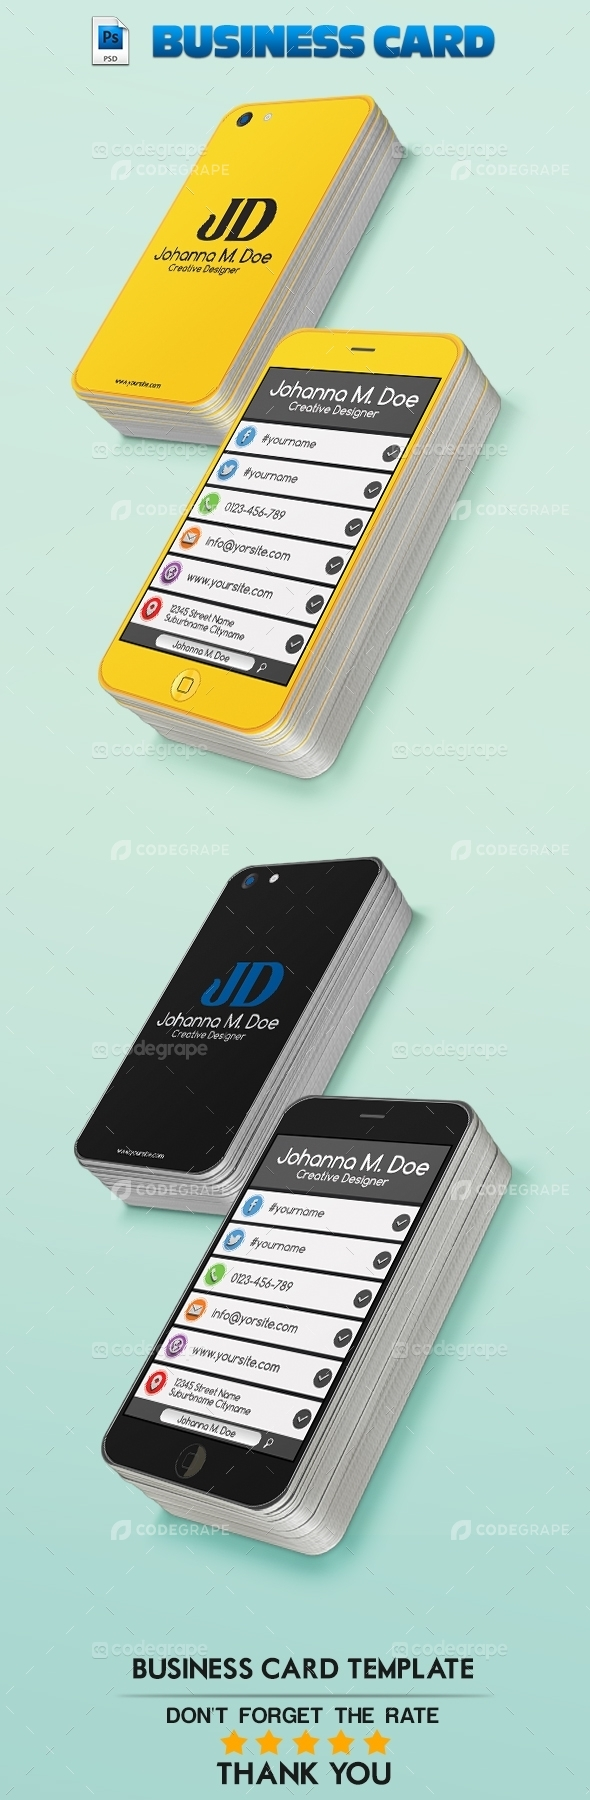 iPhone JD Business Card